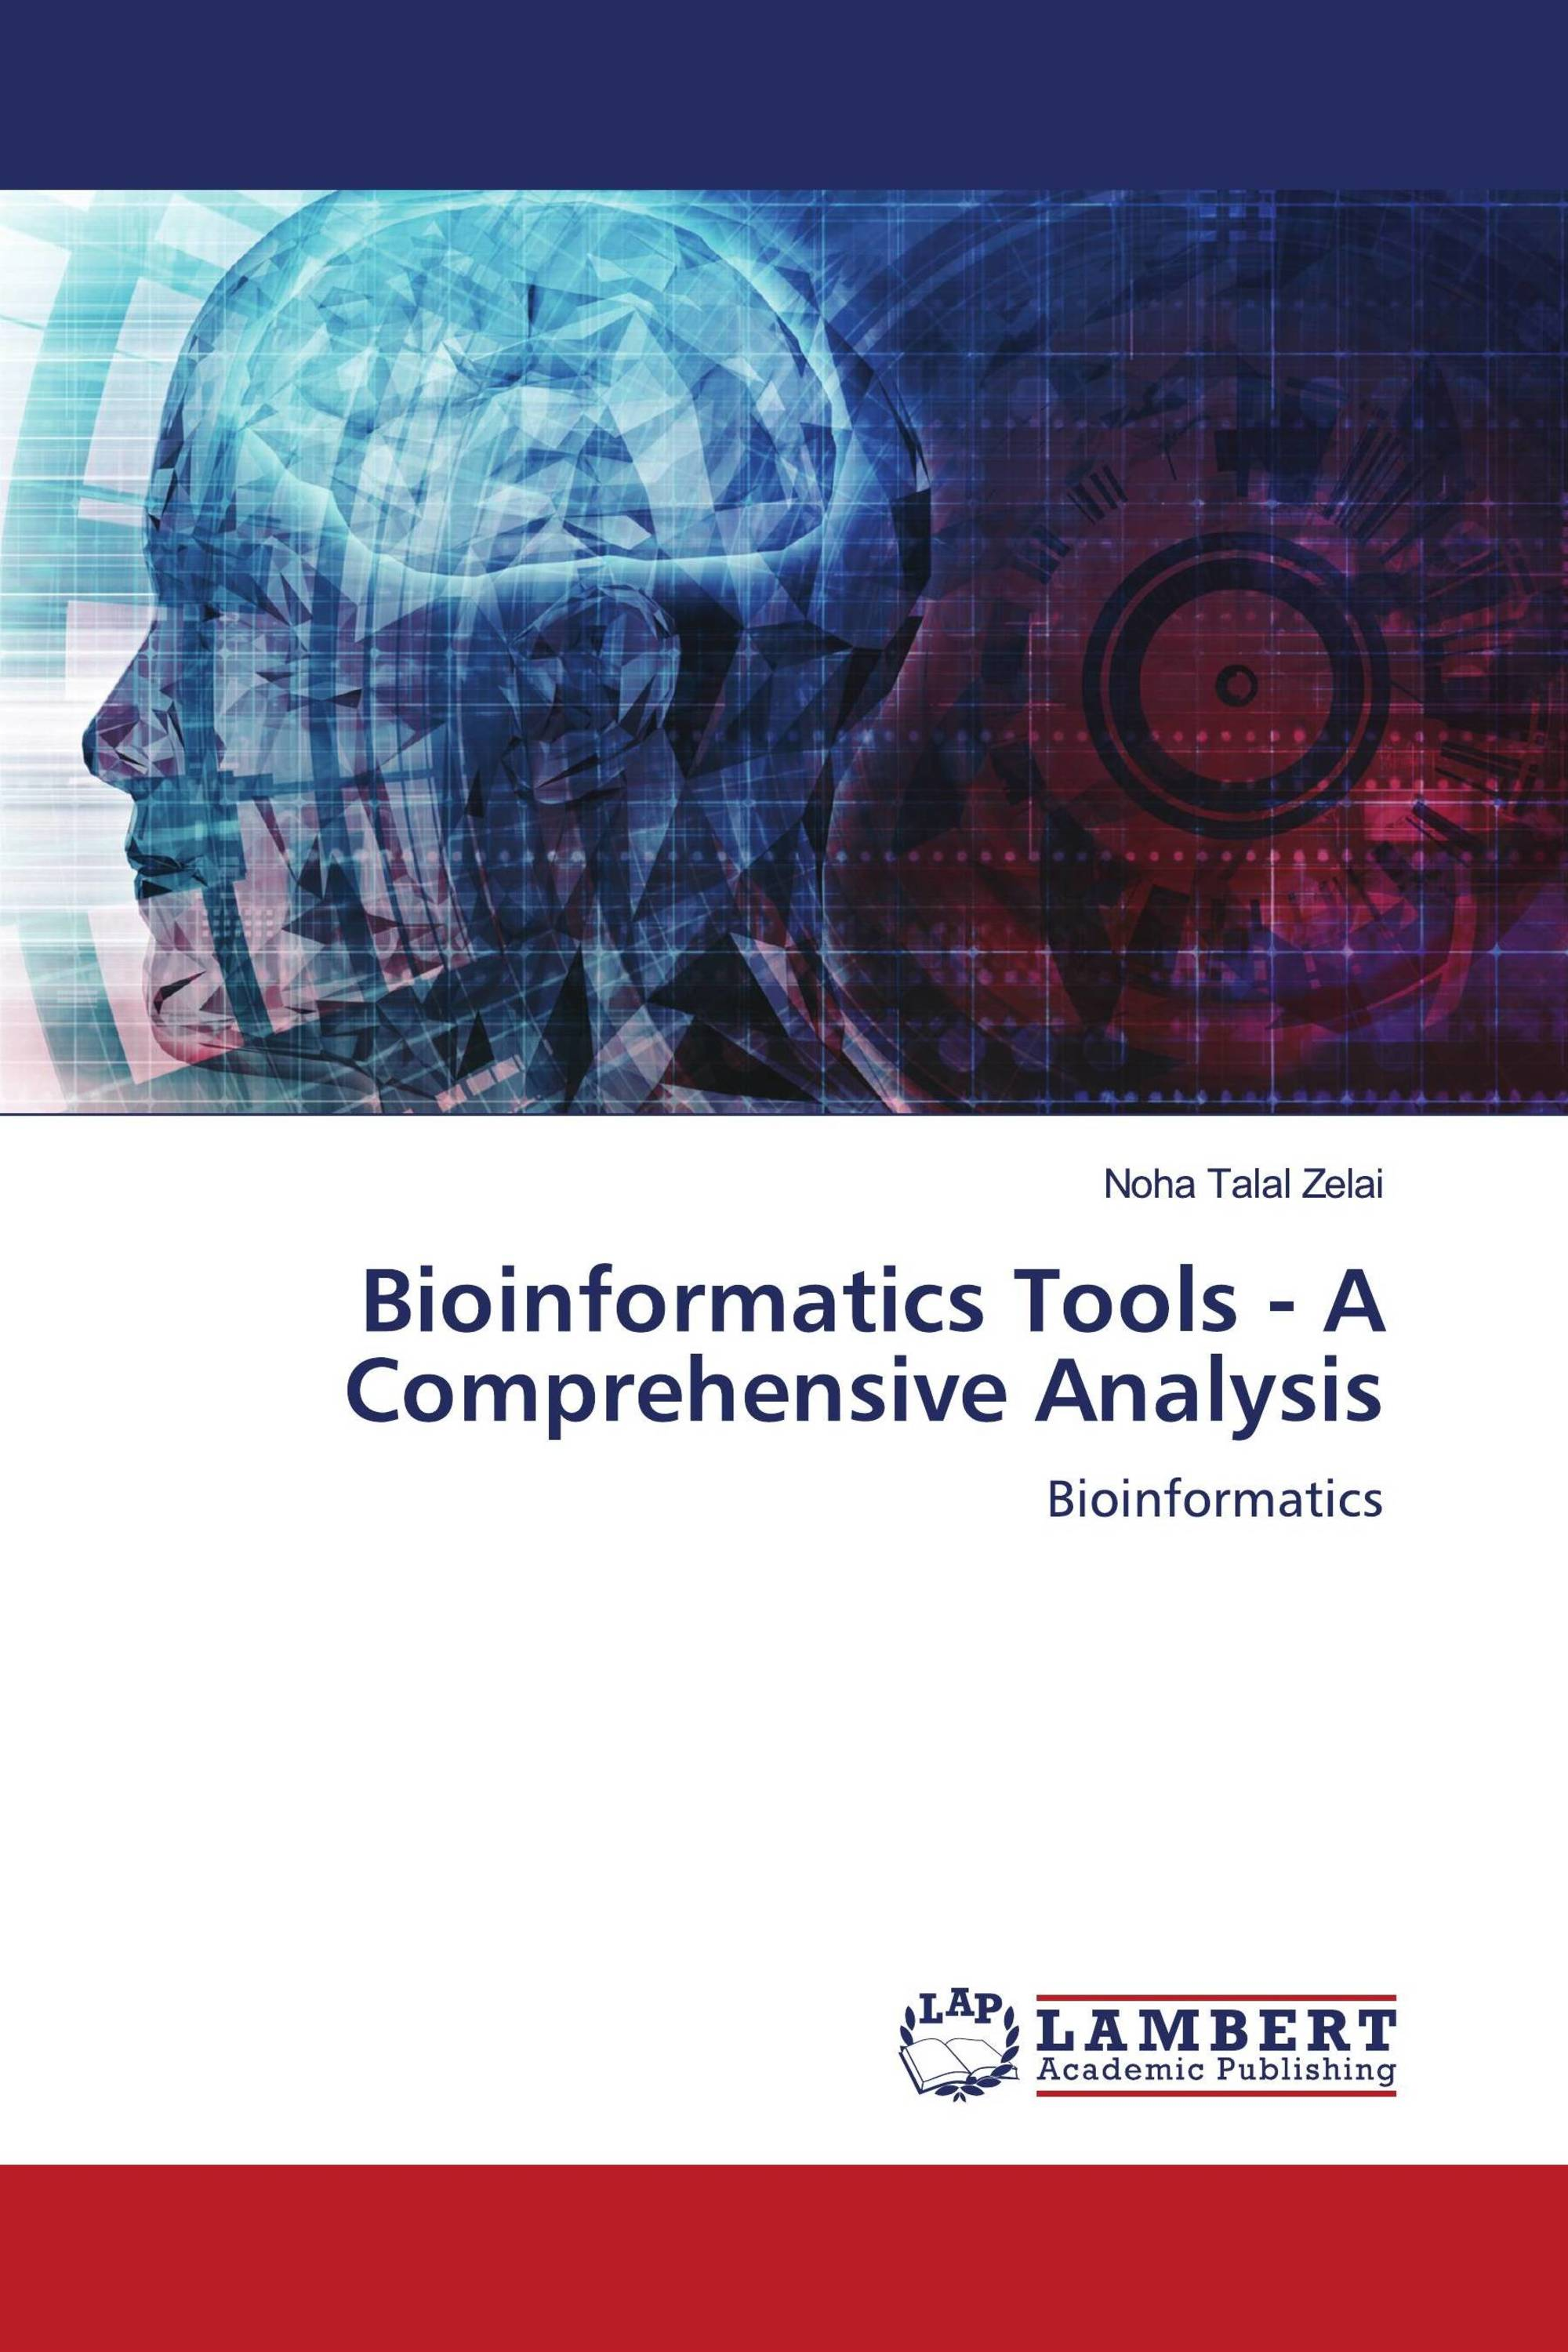 Bioinformatics Tools - A Comprehensive Analysis